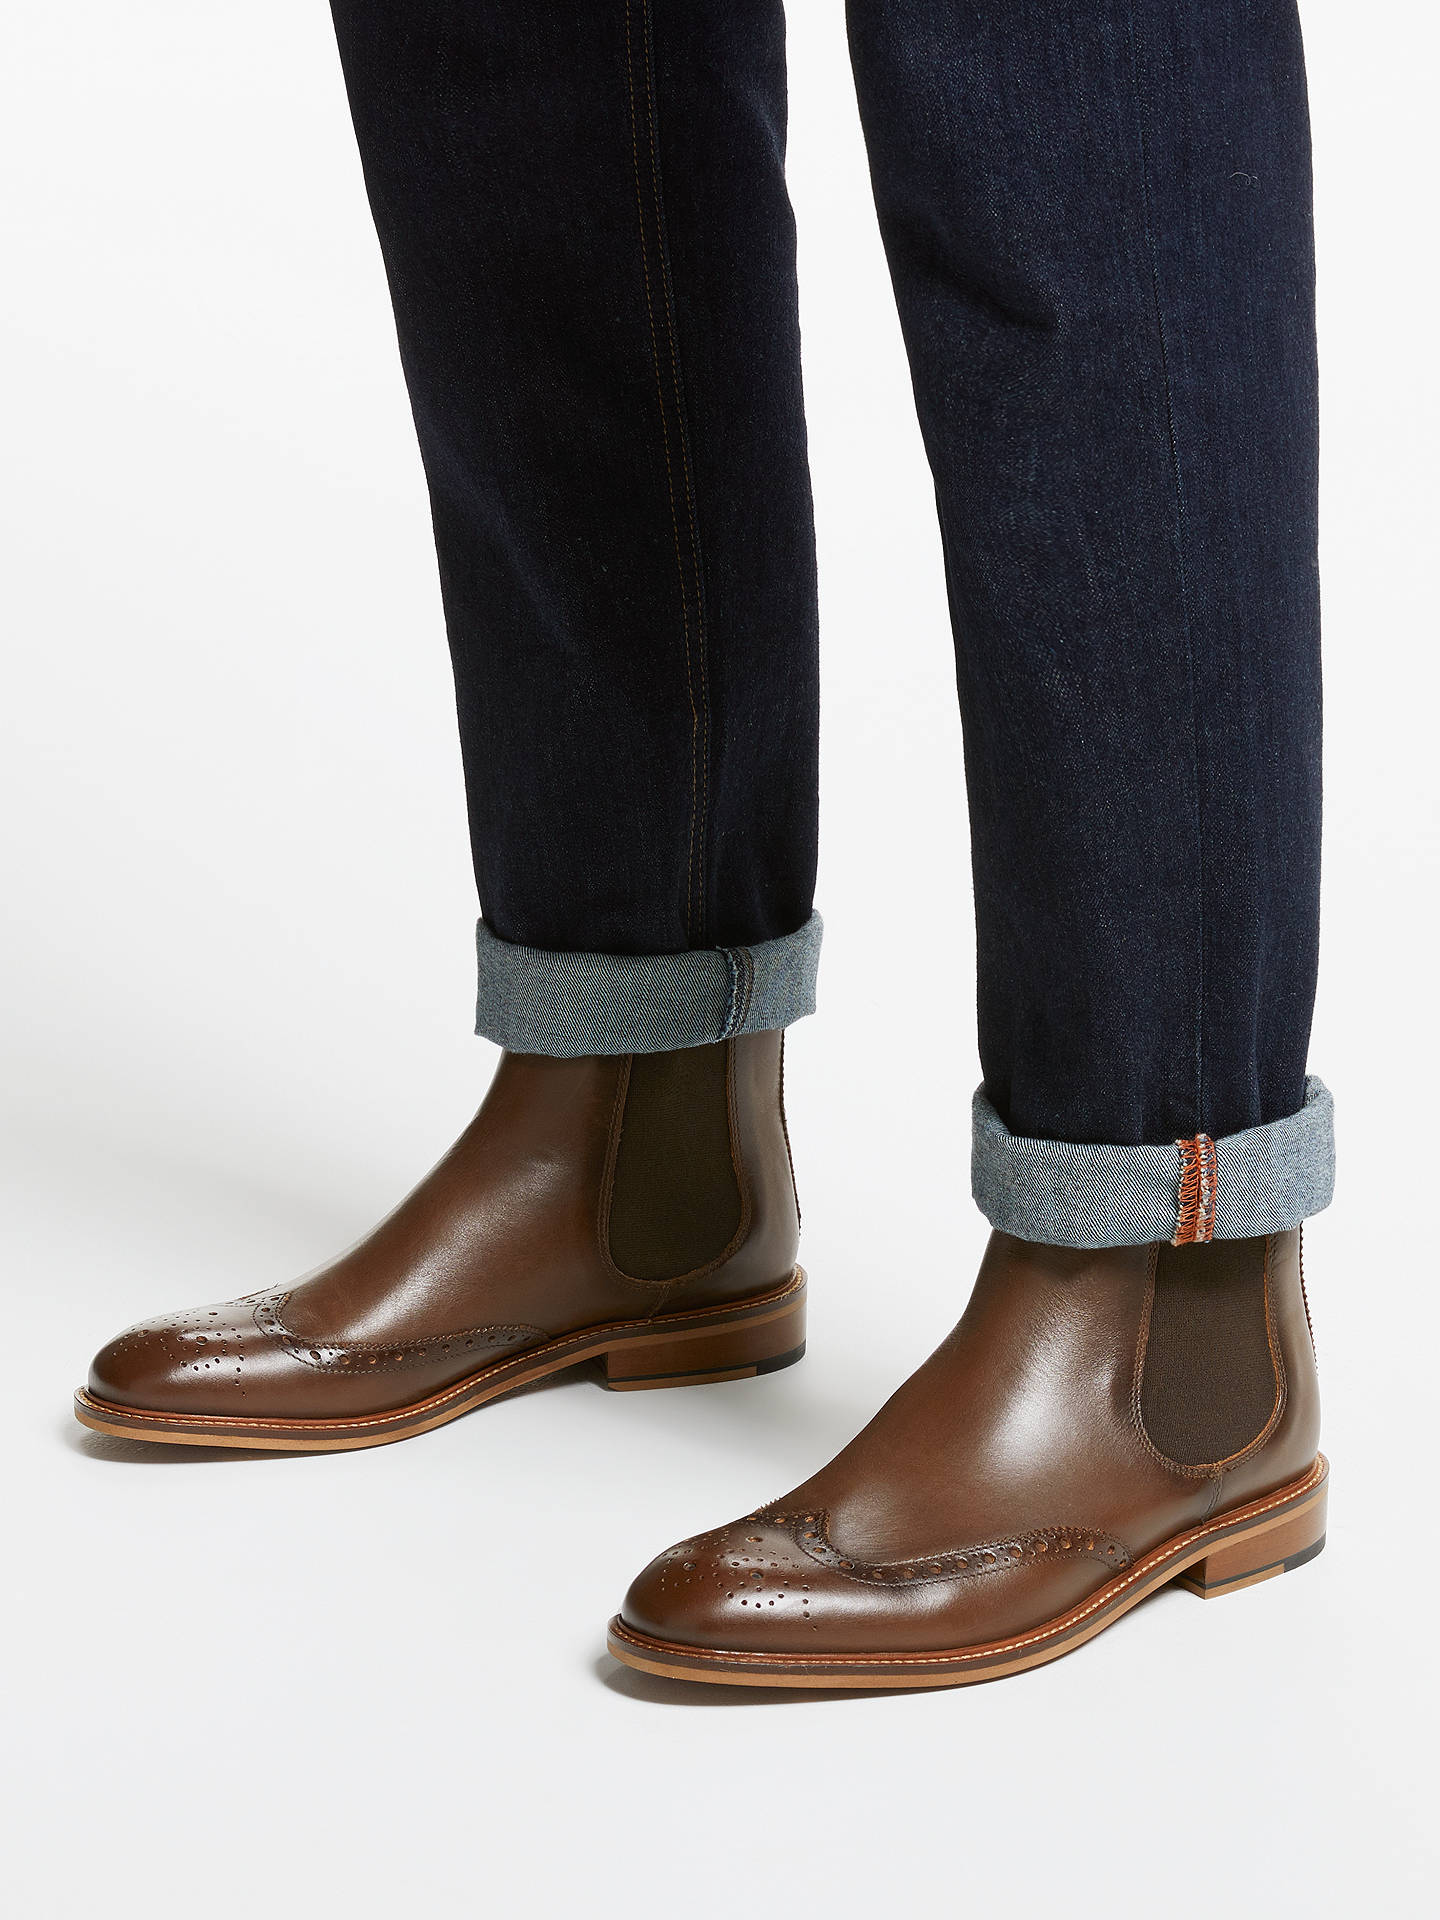 dd22782f26a John Lewis & Partners Nate Brogue Chelsea Boots, Brown at John Lewis ...